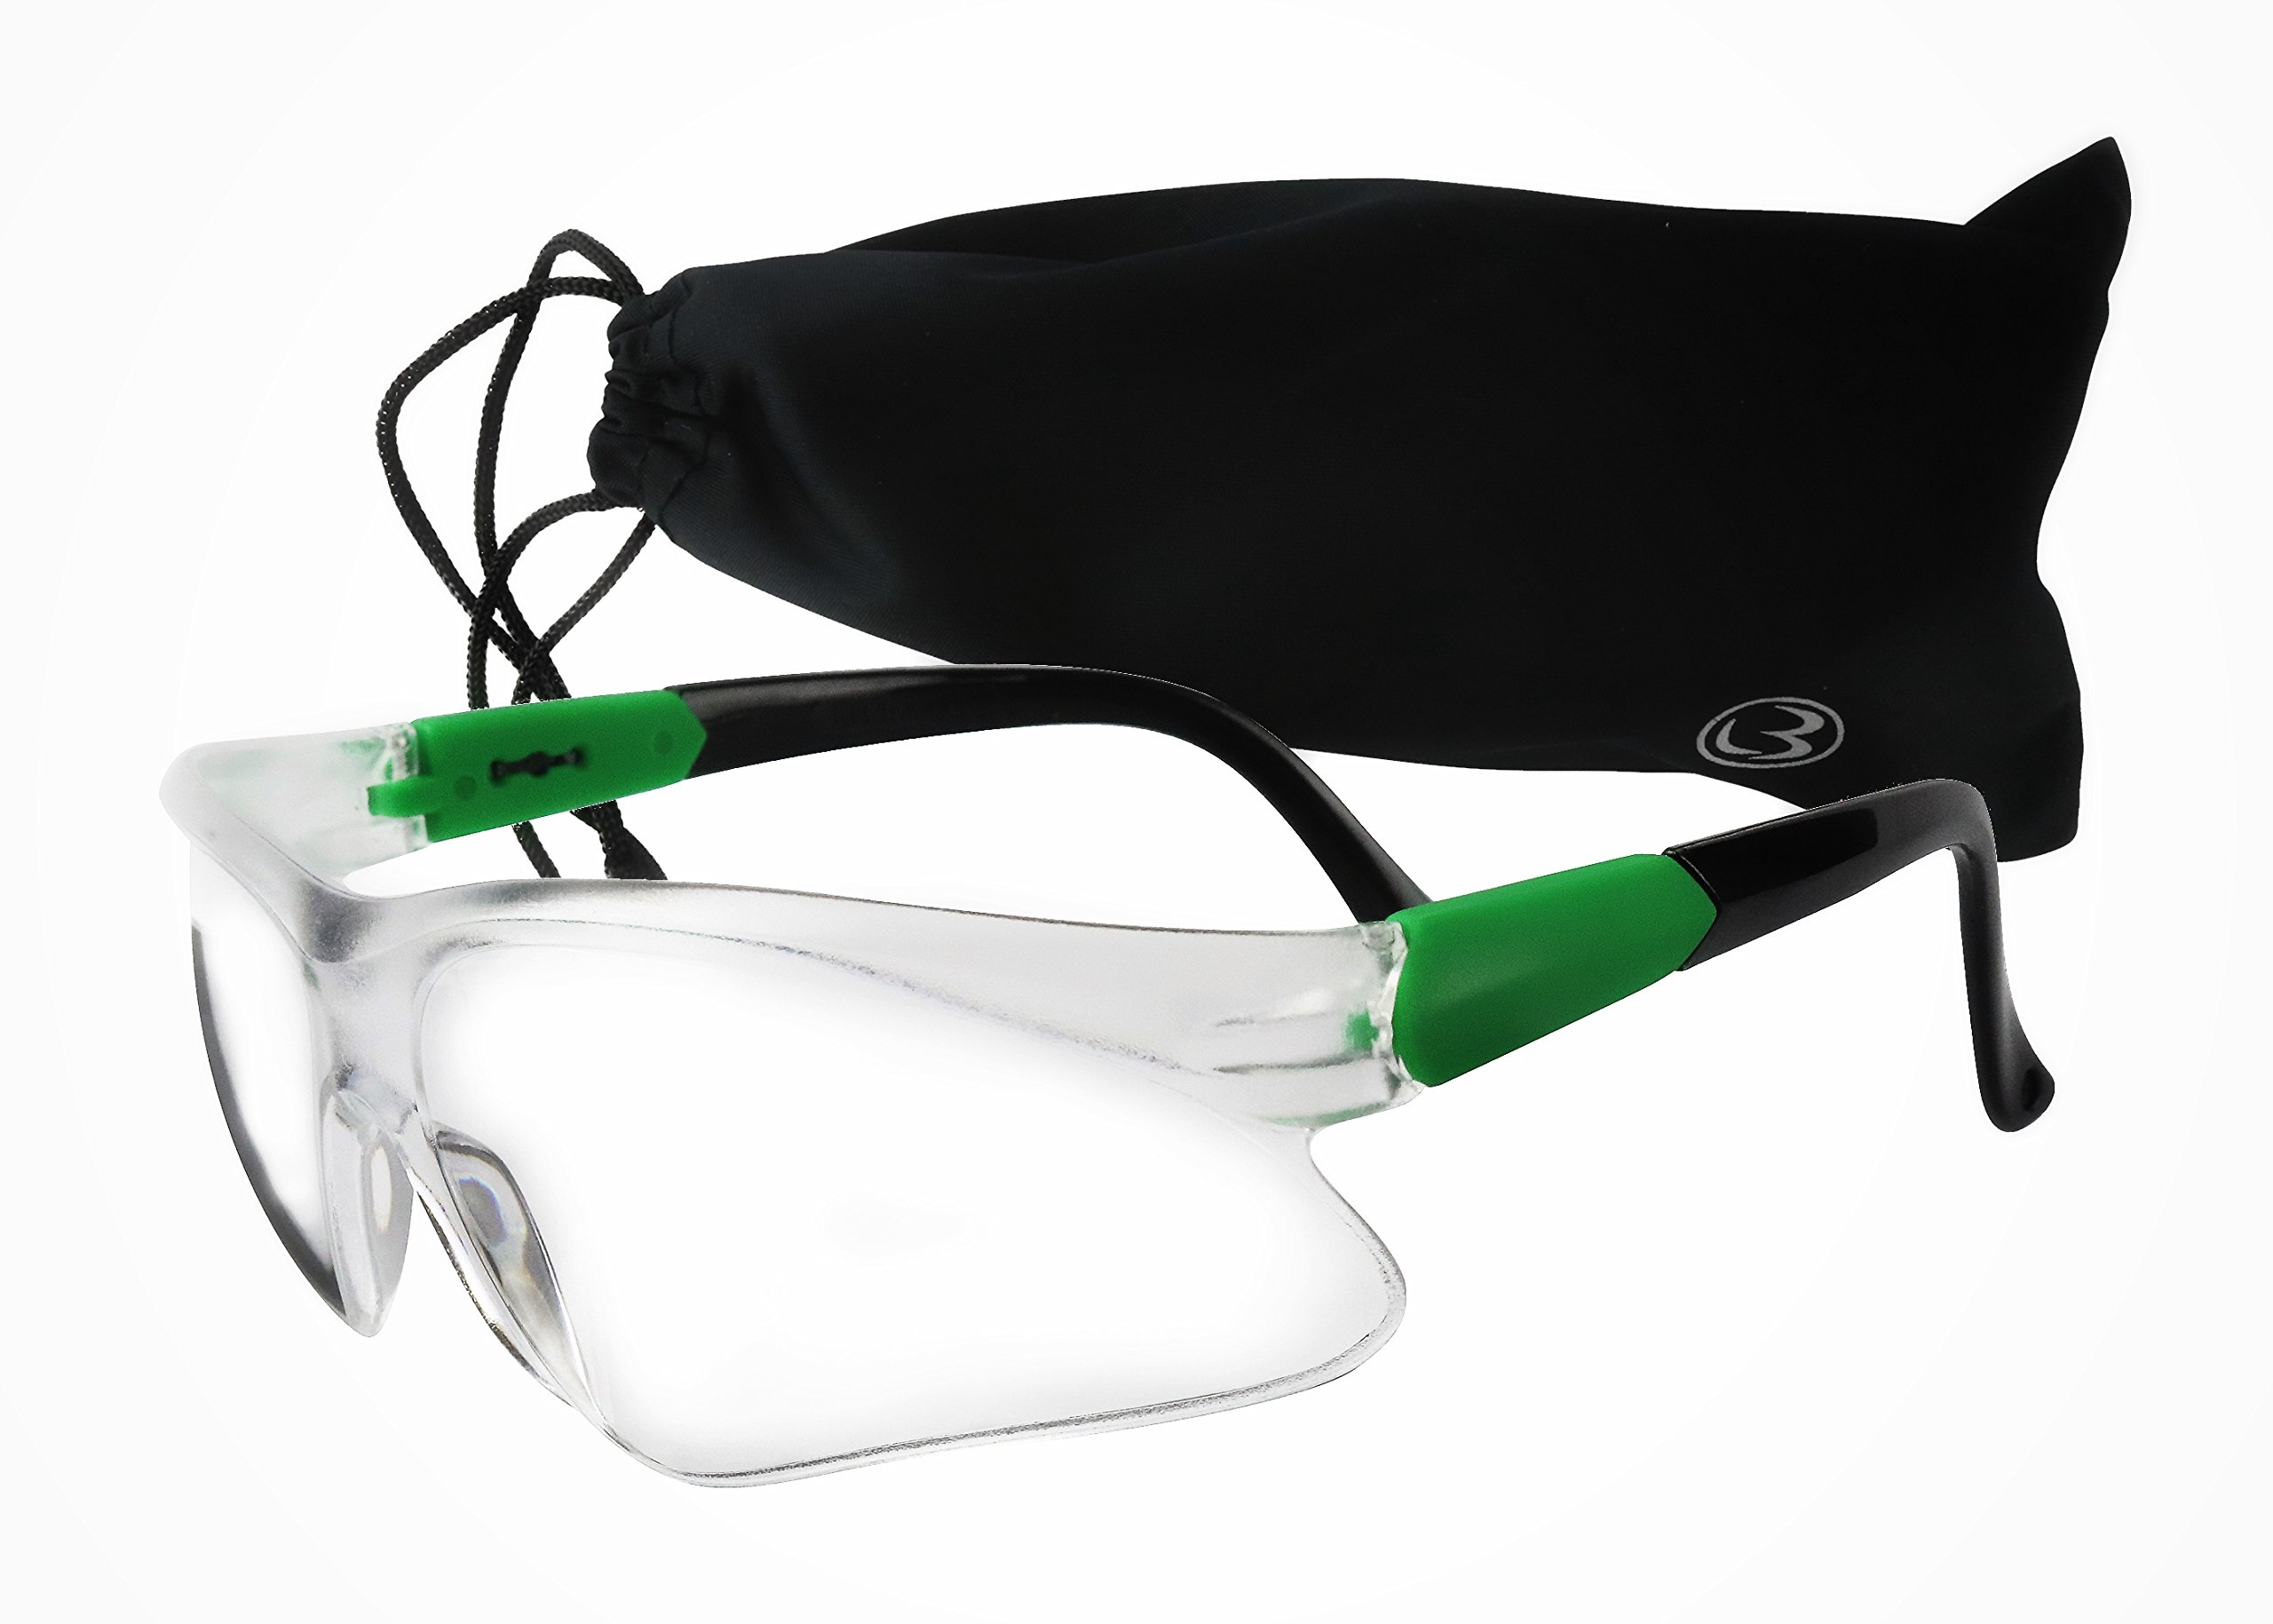 MAGNUS Safety Glasses/Goggles With Clear Anti-Fog, Scratch Resistant Lens - Complete Eye Protection For Work And Shooting Range z87.1 & EN166F Certified